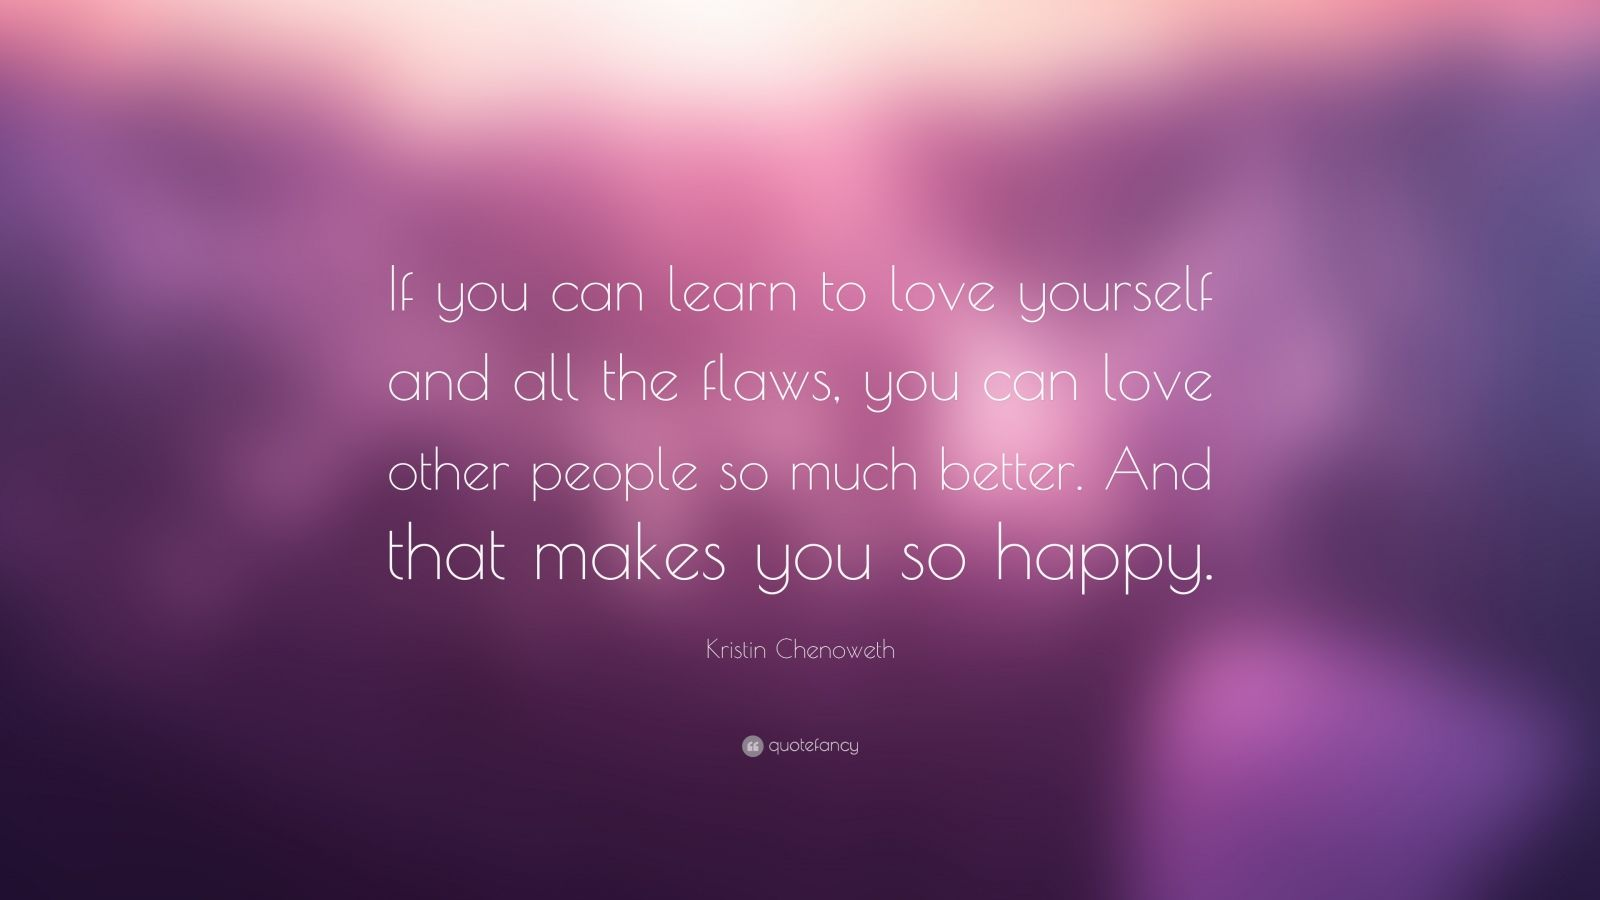 """Kristin Chenoweth Quote: """"If you can learn to love yourself and all the flaws, you can love other people so much better. And that makes you so happy."""""""